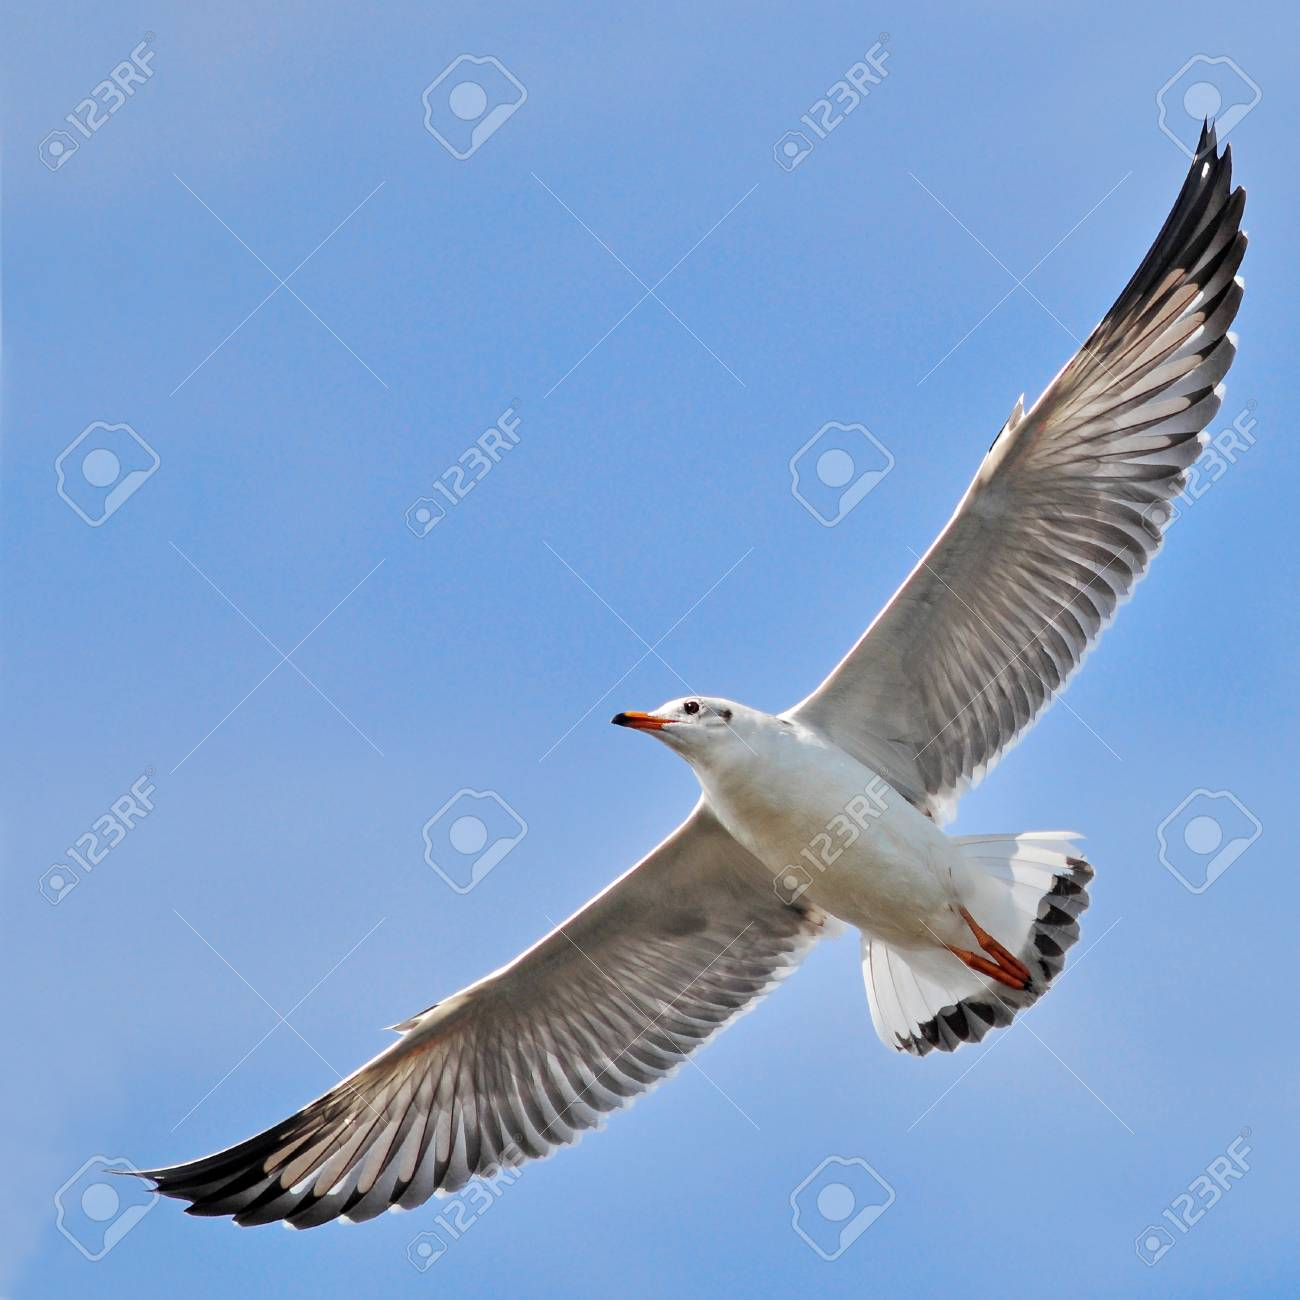 A seagull, soaring in the blue sky Stock Photo - 16385952